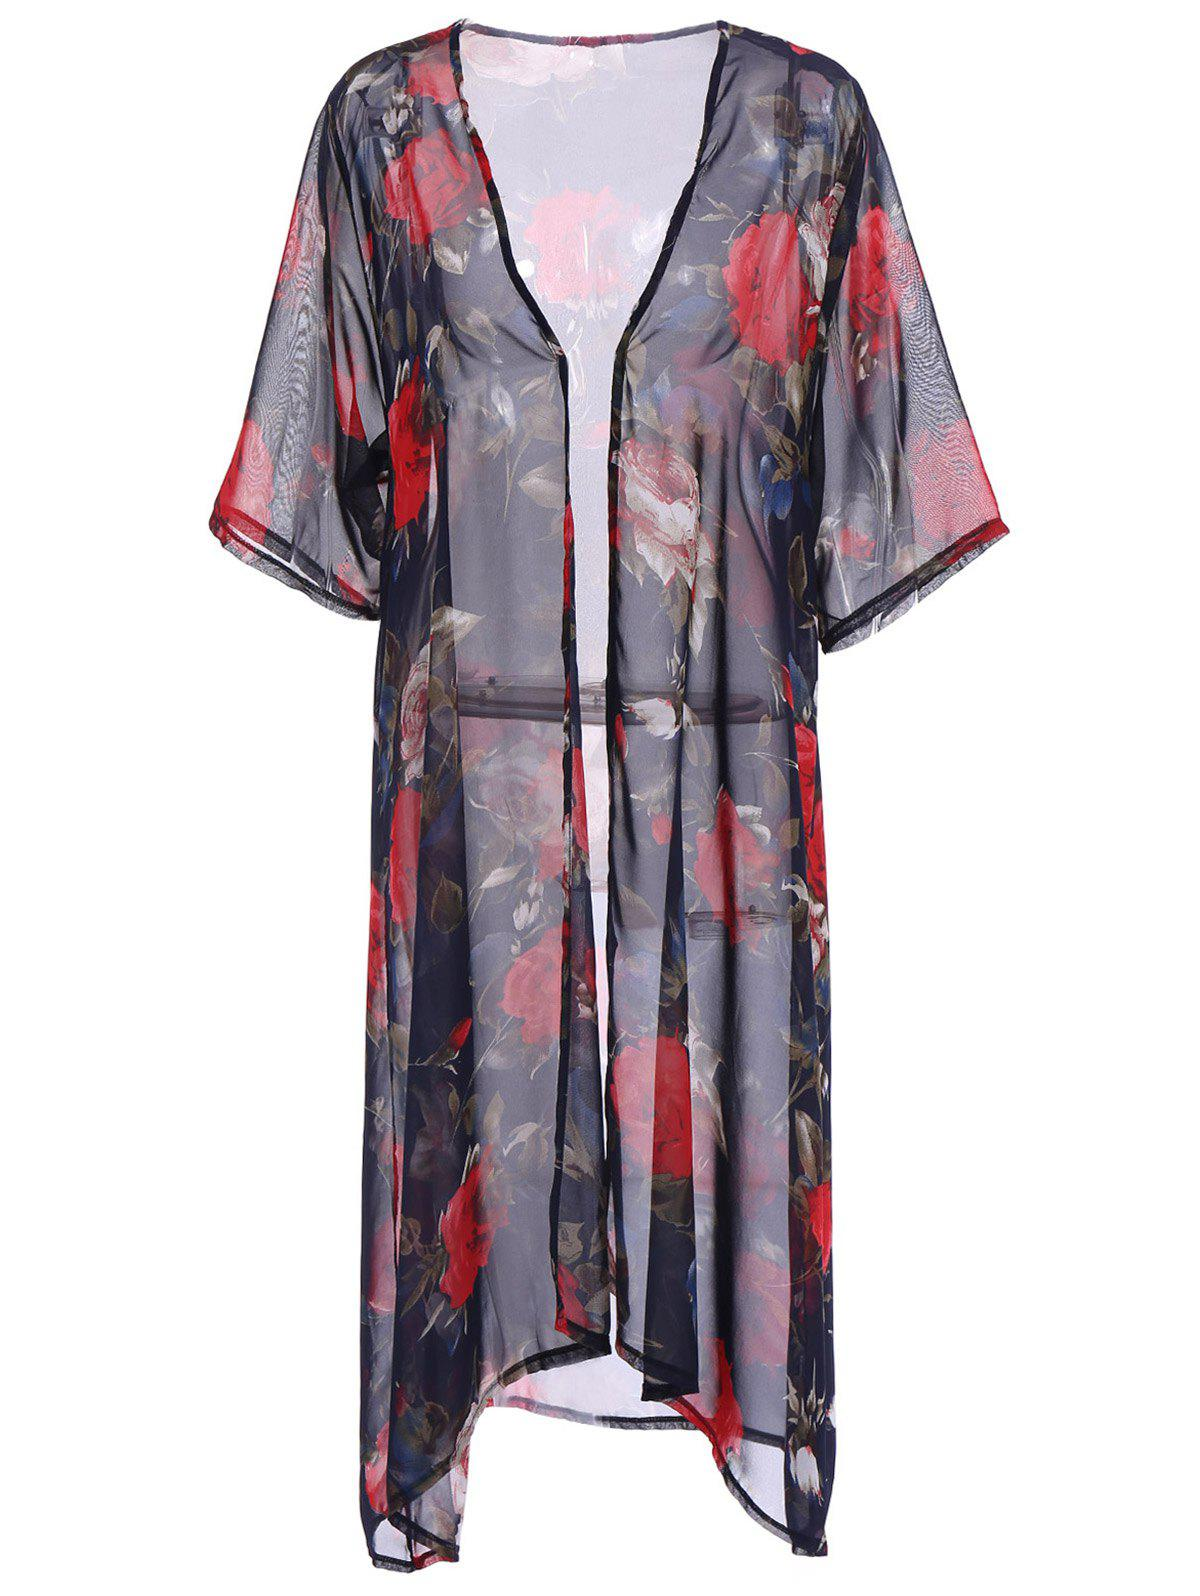 Stylish Women's Floral Print Loose-Fitting Cover-Up - DEEP BLUE ONE SIZE(FIT SIZE XS TO M)